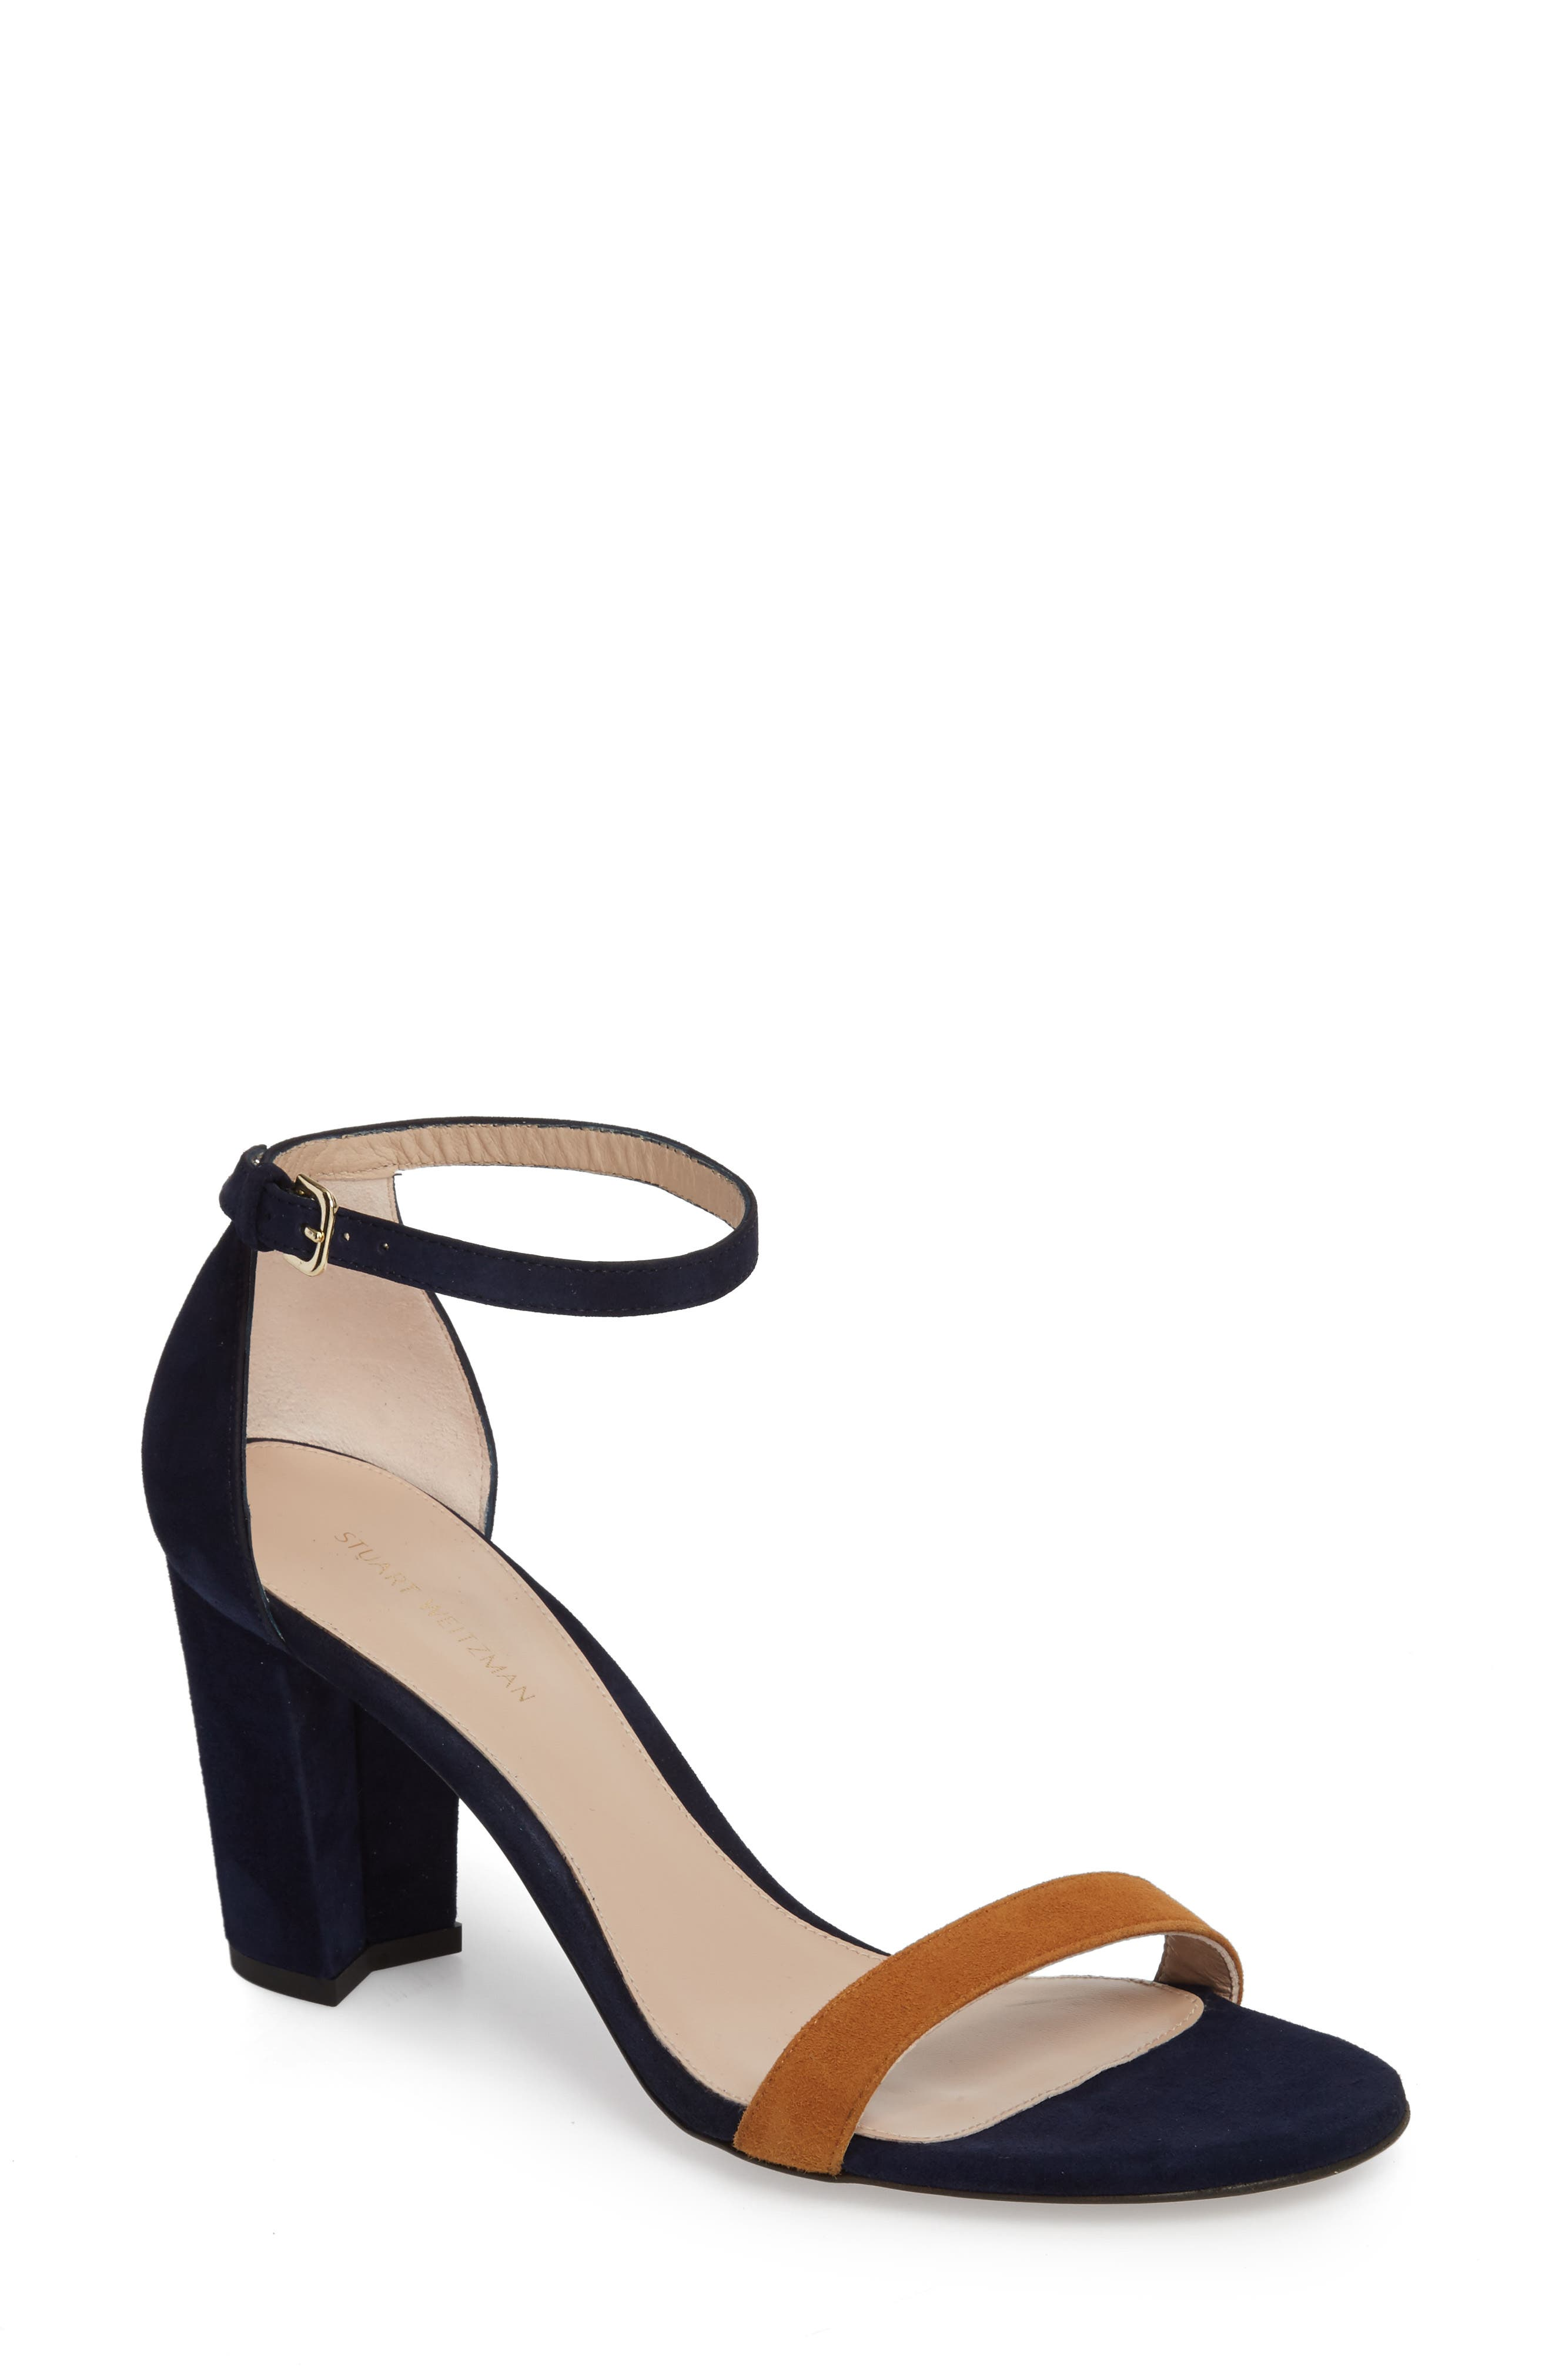 NearlyNude Ankle Strap Sandal,                             Main thumbnail 3, color,